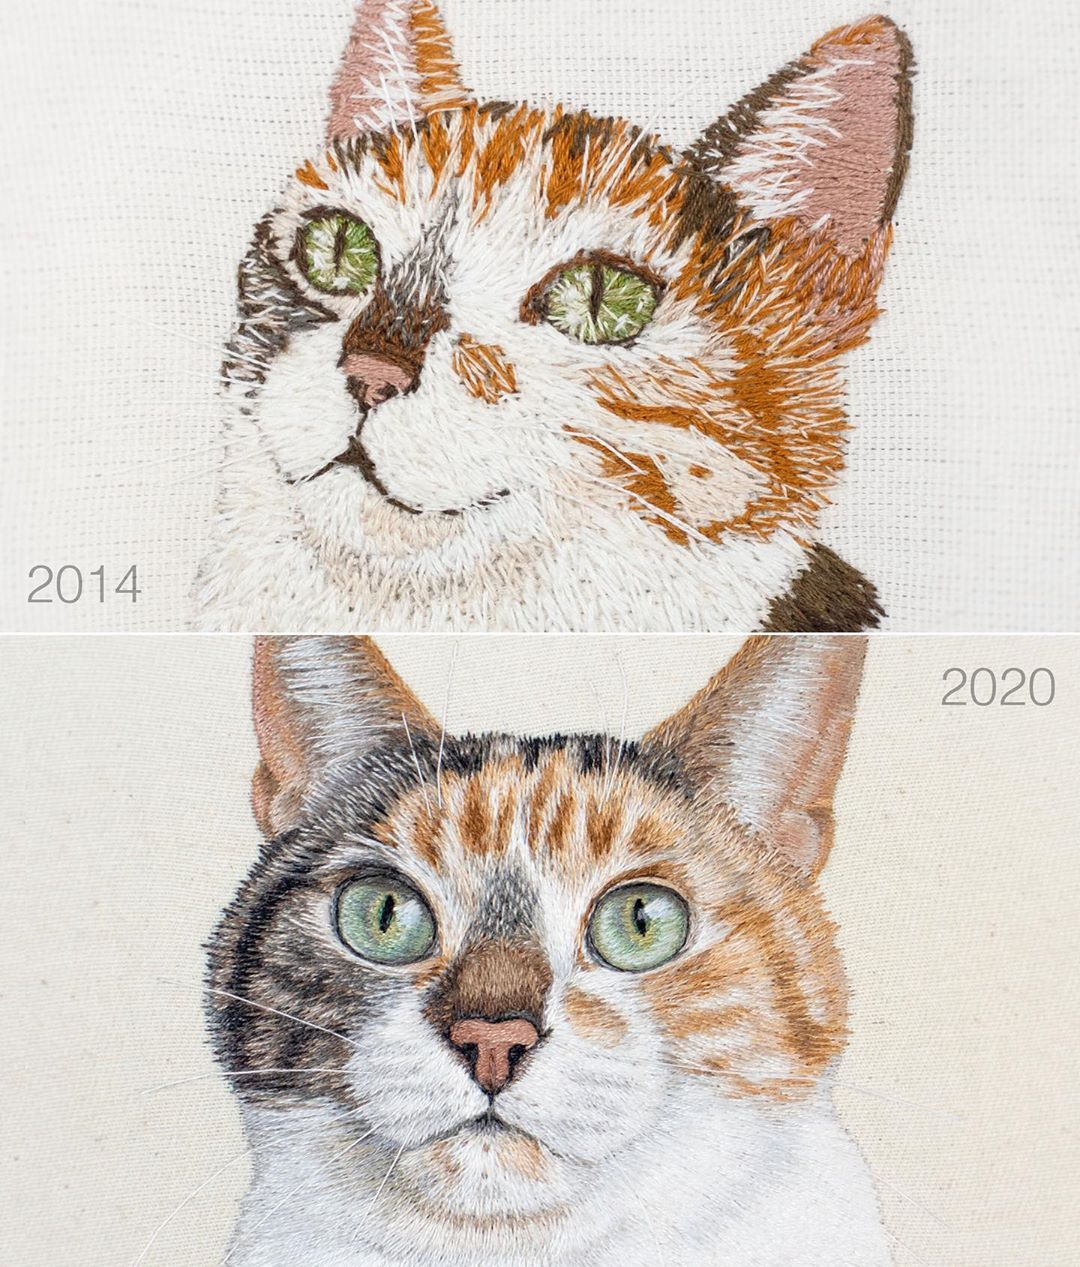 Embroidery art then and now